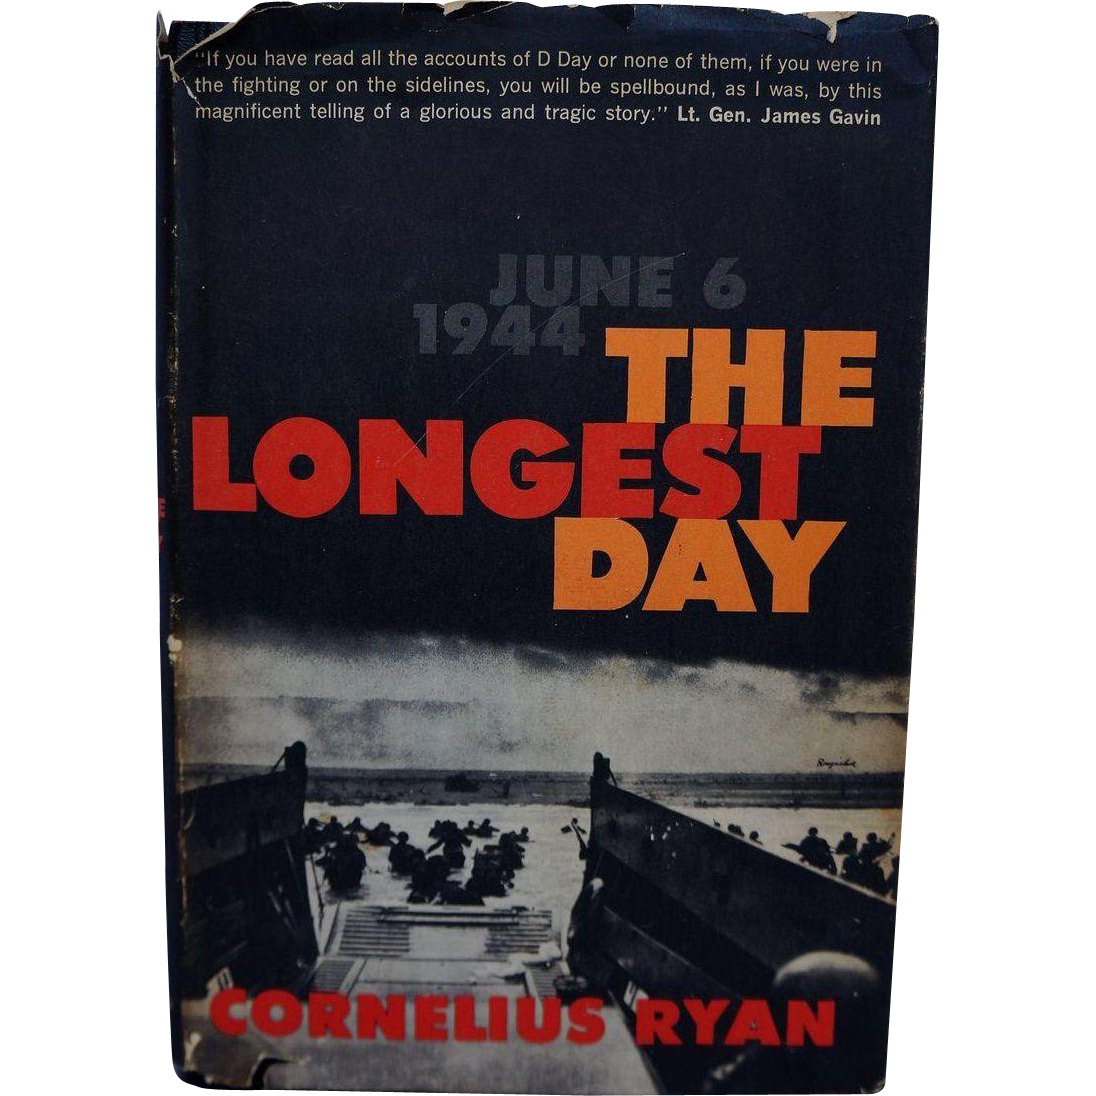 The Longest Day Cornelius Ryan 1959 Simon Schuster Book Club Edition